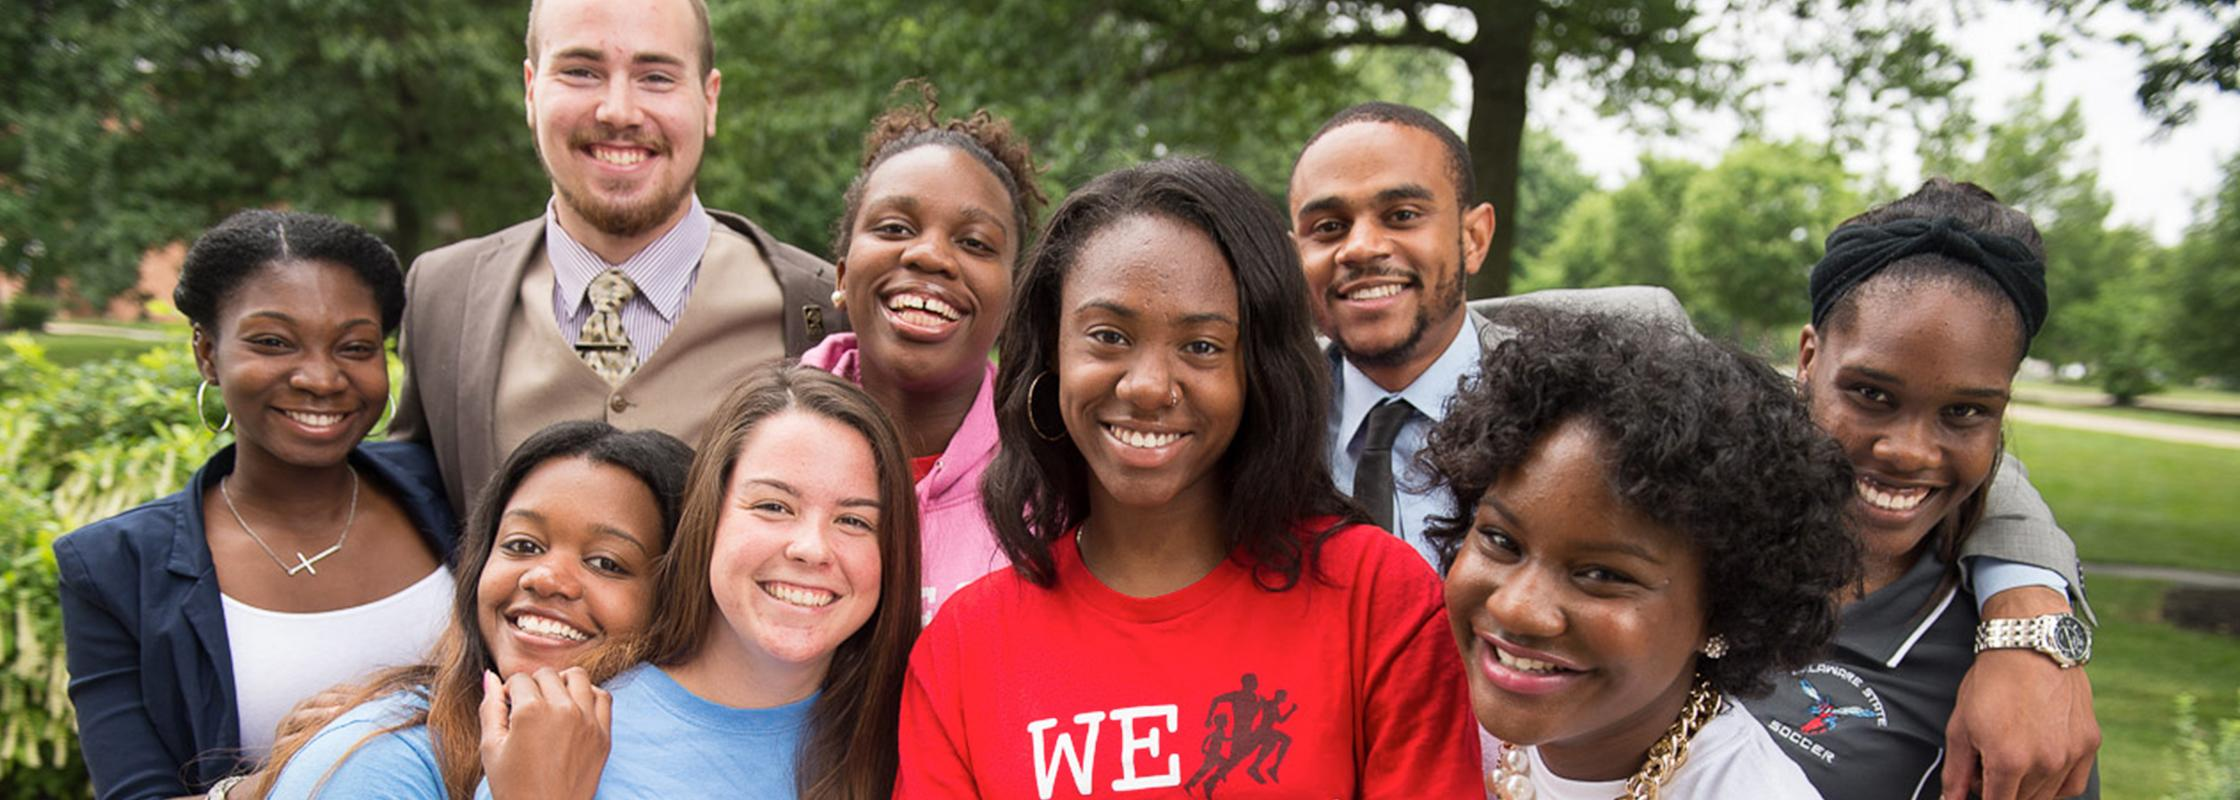 diverse group of DSU students